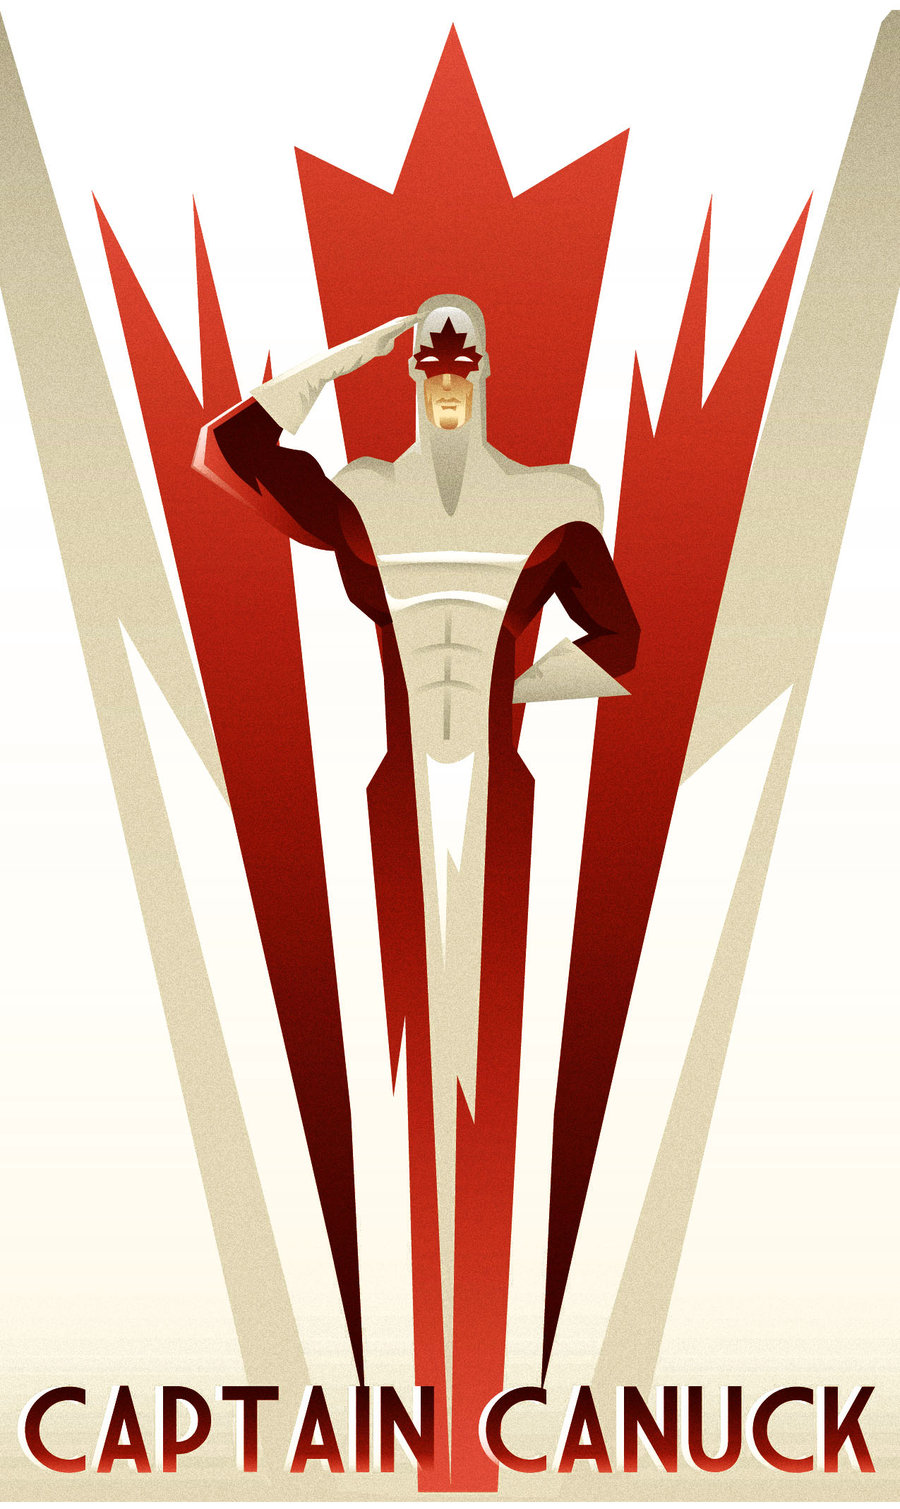 Captain_Canuck_by_rodolforever